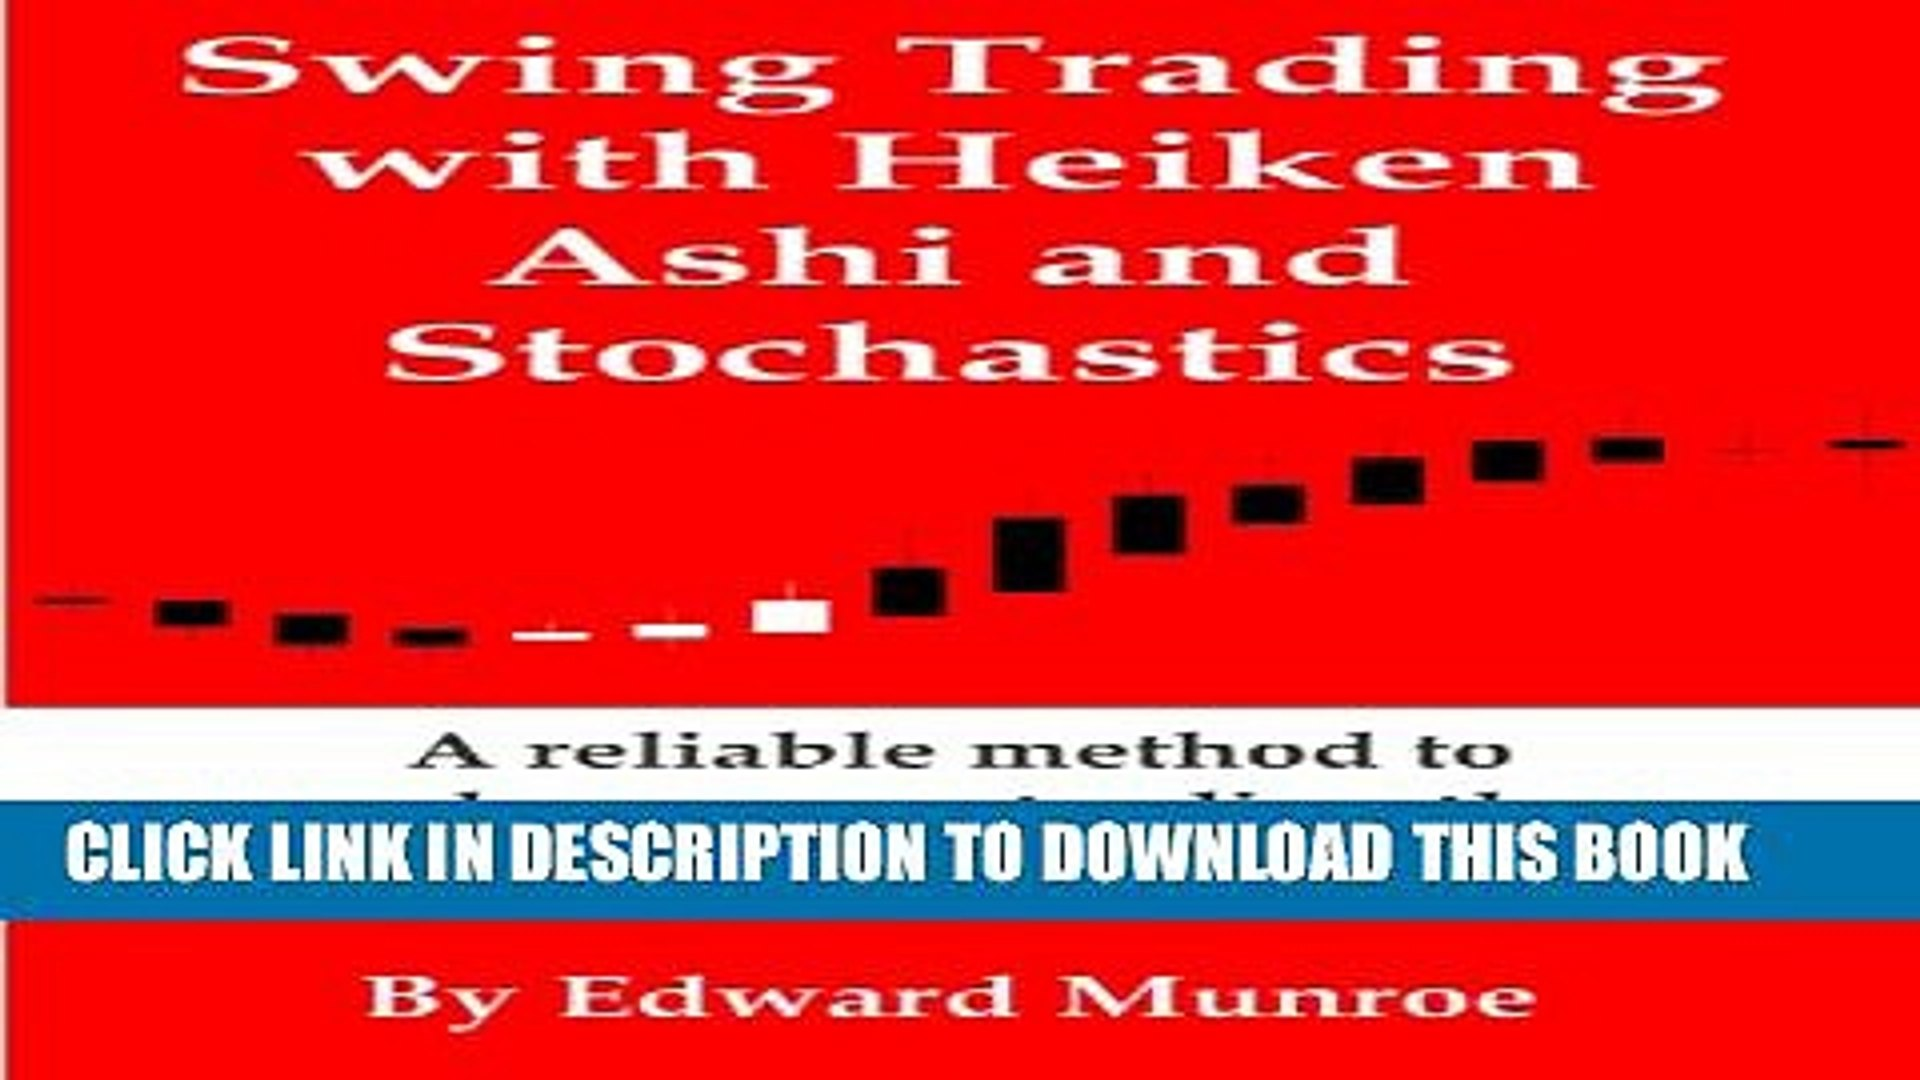 [DOWNLOAD] PDF Swing Trading with Heiken Ashi and Stochastics Revised: A  reliable method to make